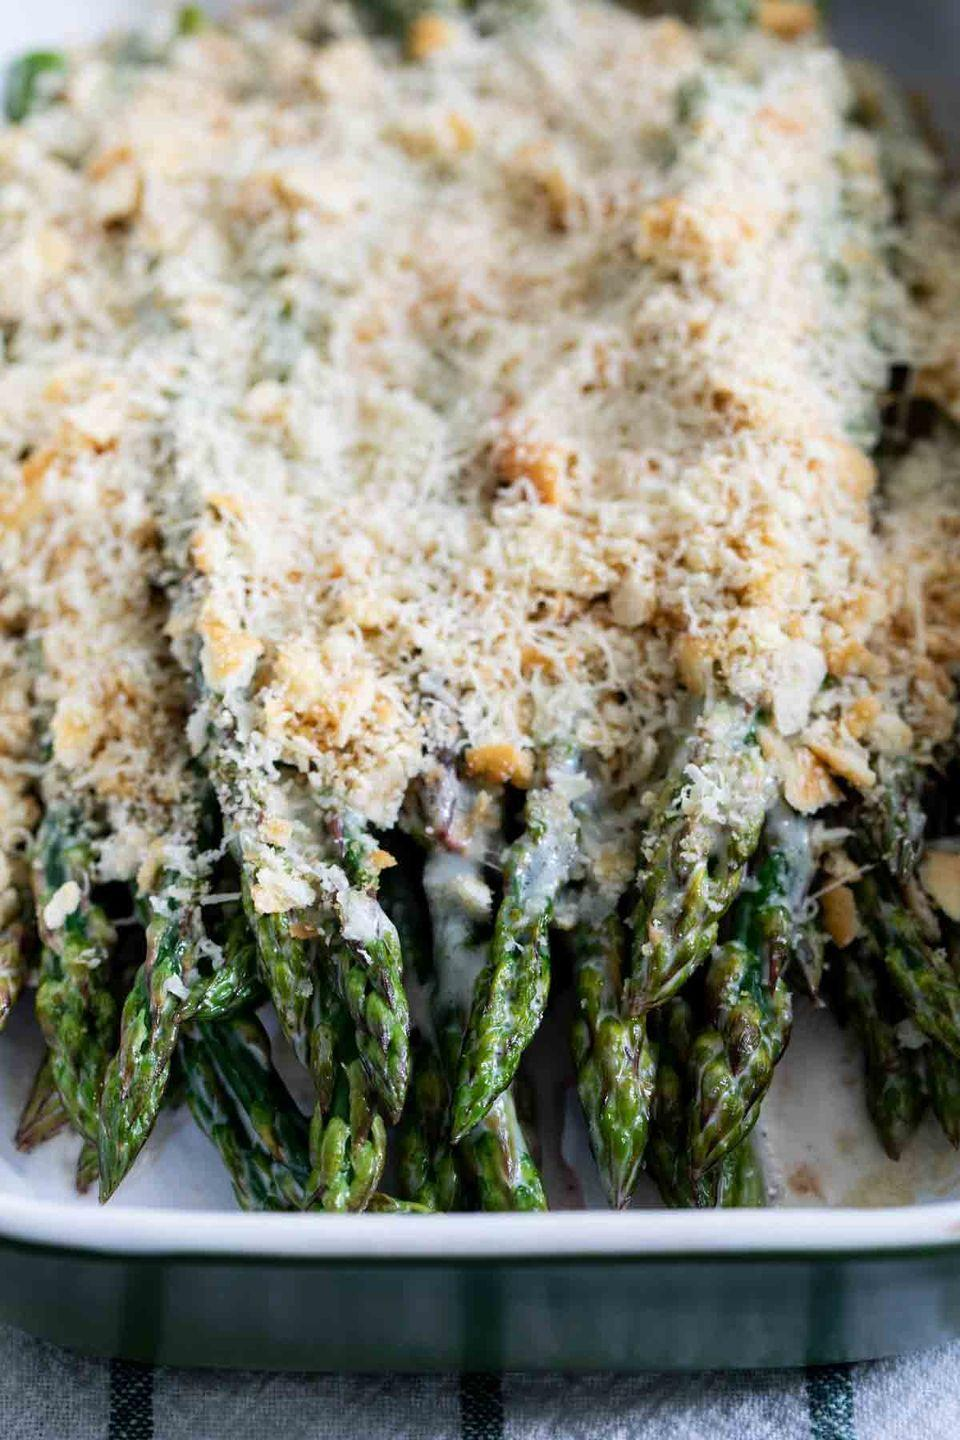 "<p>You only need four ingredients to make this simple asparagus dish together.</p><p><strong>Get the recipe at <a href=""https://www.tasteandtellblog.com/easy-creamy-baked-asparagus/"" rel=""nofollow noopener"" target=""_blank"" data-ylk=""slk:Taste and Tell"" class=""link rapid-noclick-resp"">Taste and Tell</a>. </strong></p><p><strong><a class=""link rapid-noclick-resp"" href=""https://go.redirectingat.com?id=74968X1596630&url=https%3A%2F%2Fwww.walmart.com%2Fbrowse%2Fhome%2Fserveware%2Fthe-pioneer-woman%2F4044_623679_639999_2347672%3Ffacet%3Dbrand%253AThe%2BPioneer%2BWoman&sref=https%3A%2F%2Fwww.thepioneerwoman.com%2Ffood-cooking%2Fmeals-menus%2Fg33251890%2Fbest-thanksgiving-sides%2F"" rel=""nofollow noopener"" target=""_blank"" data-ylk=""slk:SHOP SERVING PLATTERS"">SHOP SERVING PLATTERS</a><br></strong></p>"